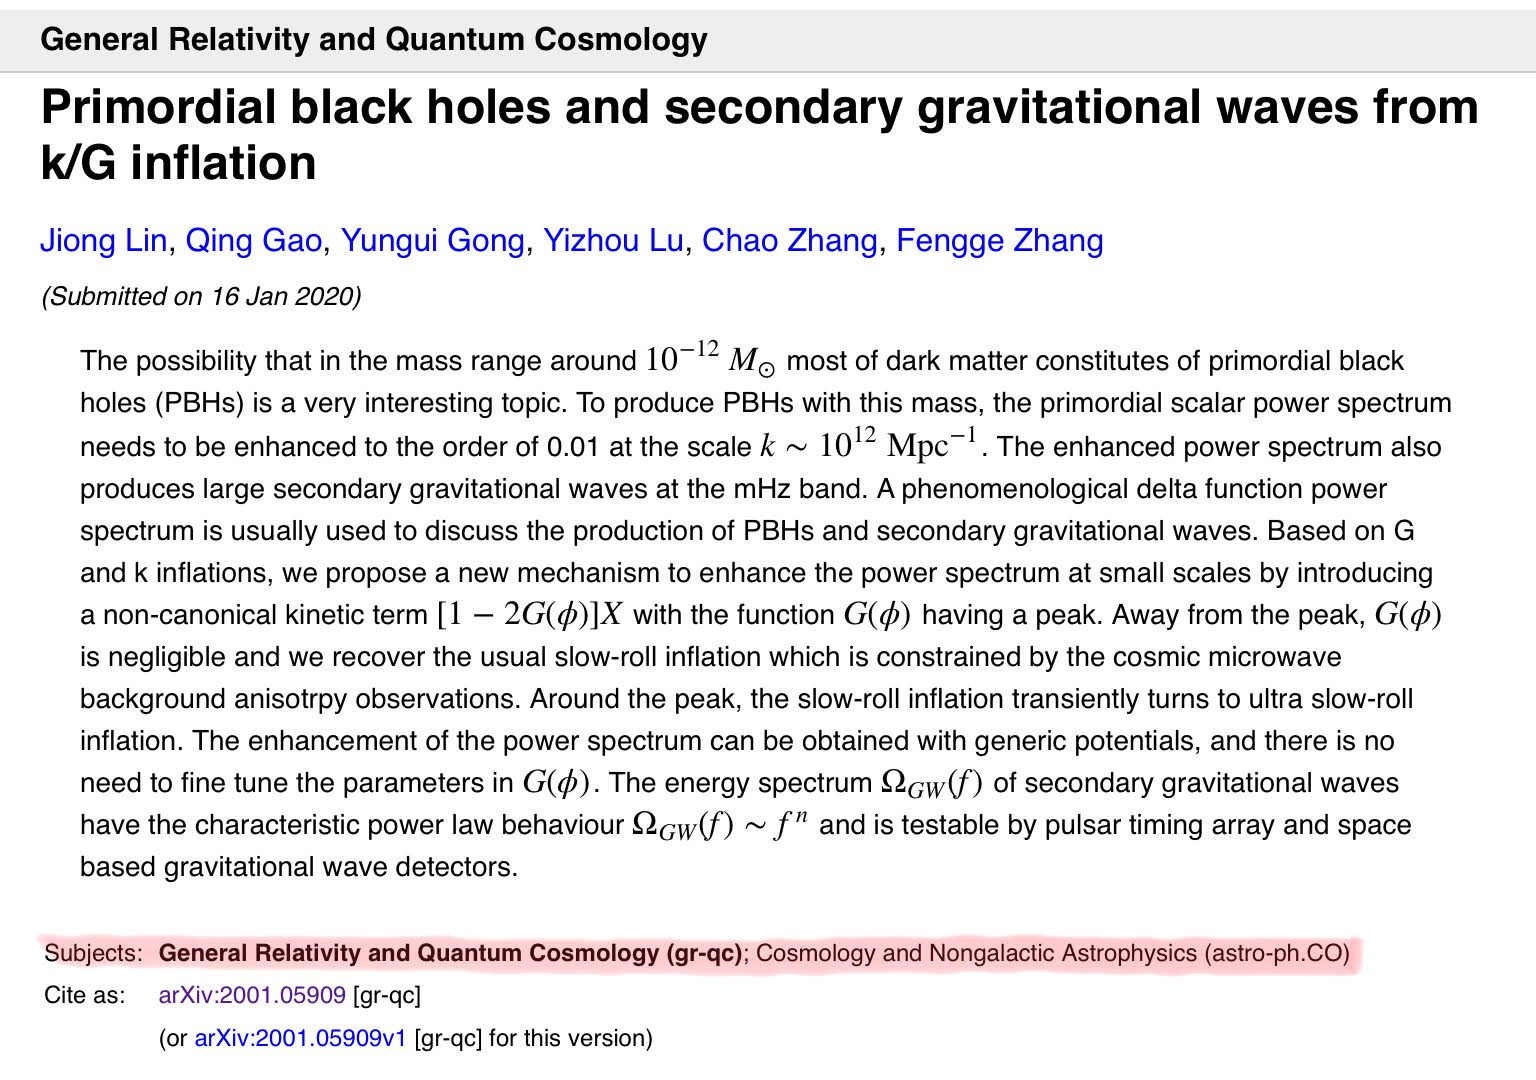 Example of an arXiv entry